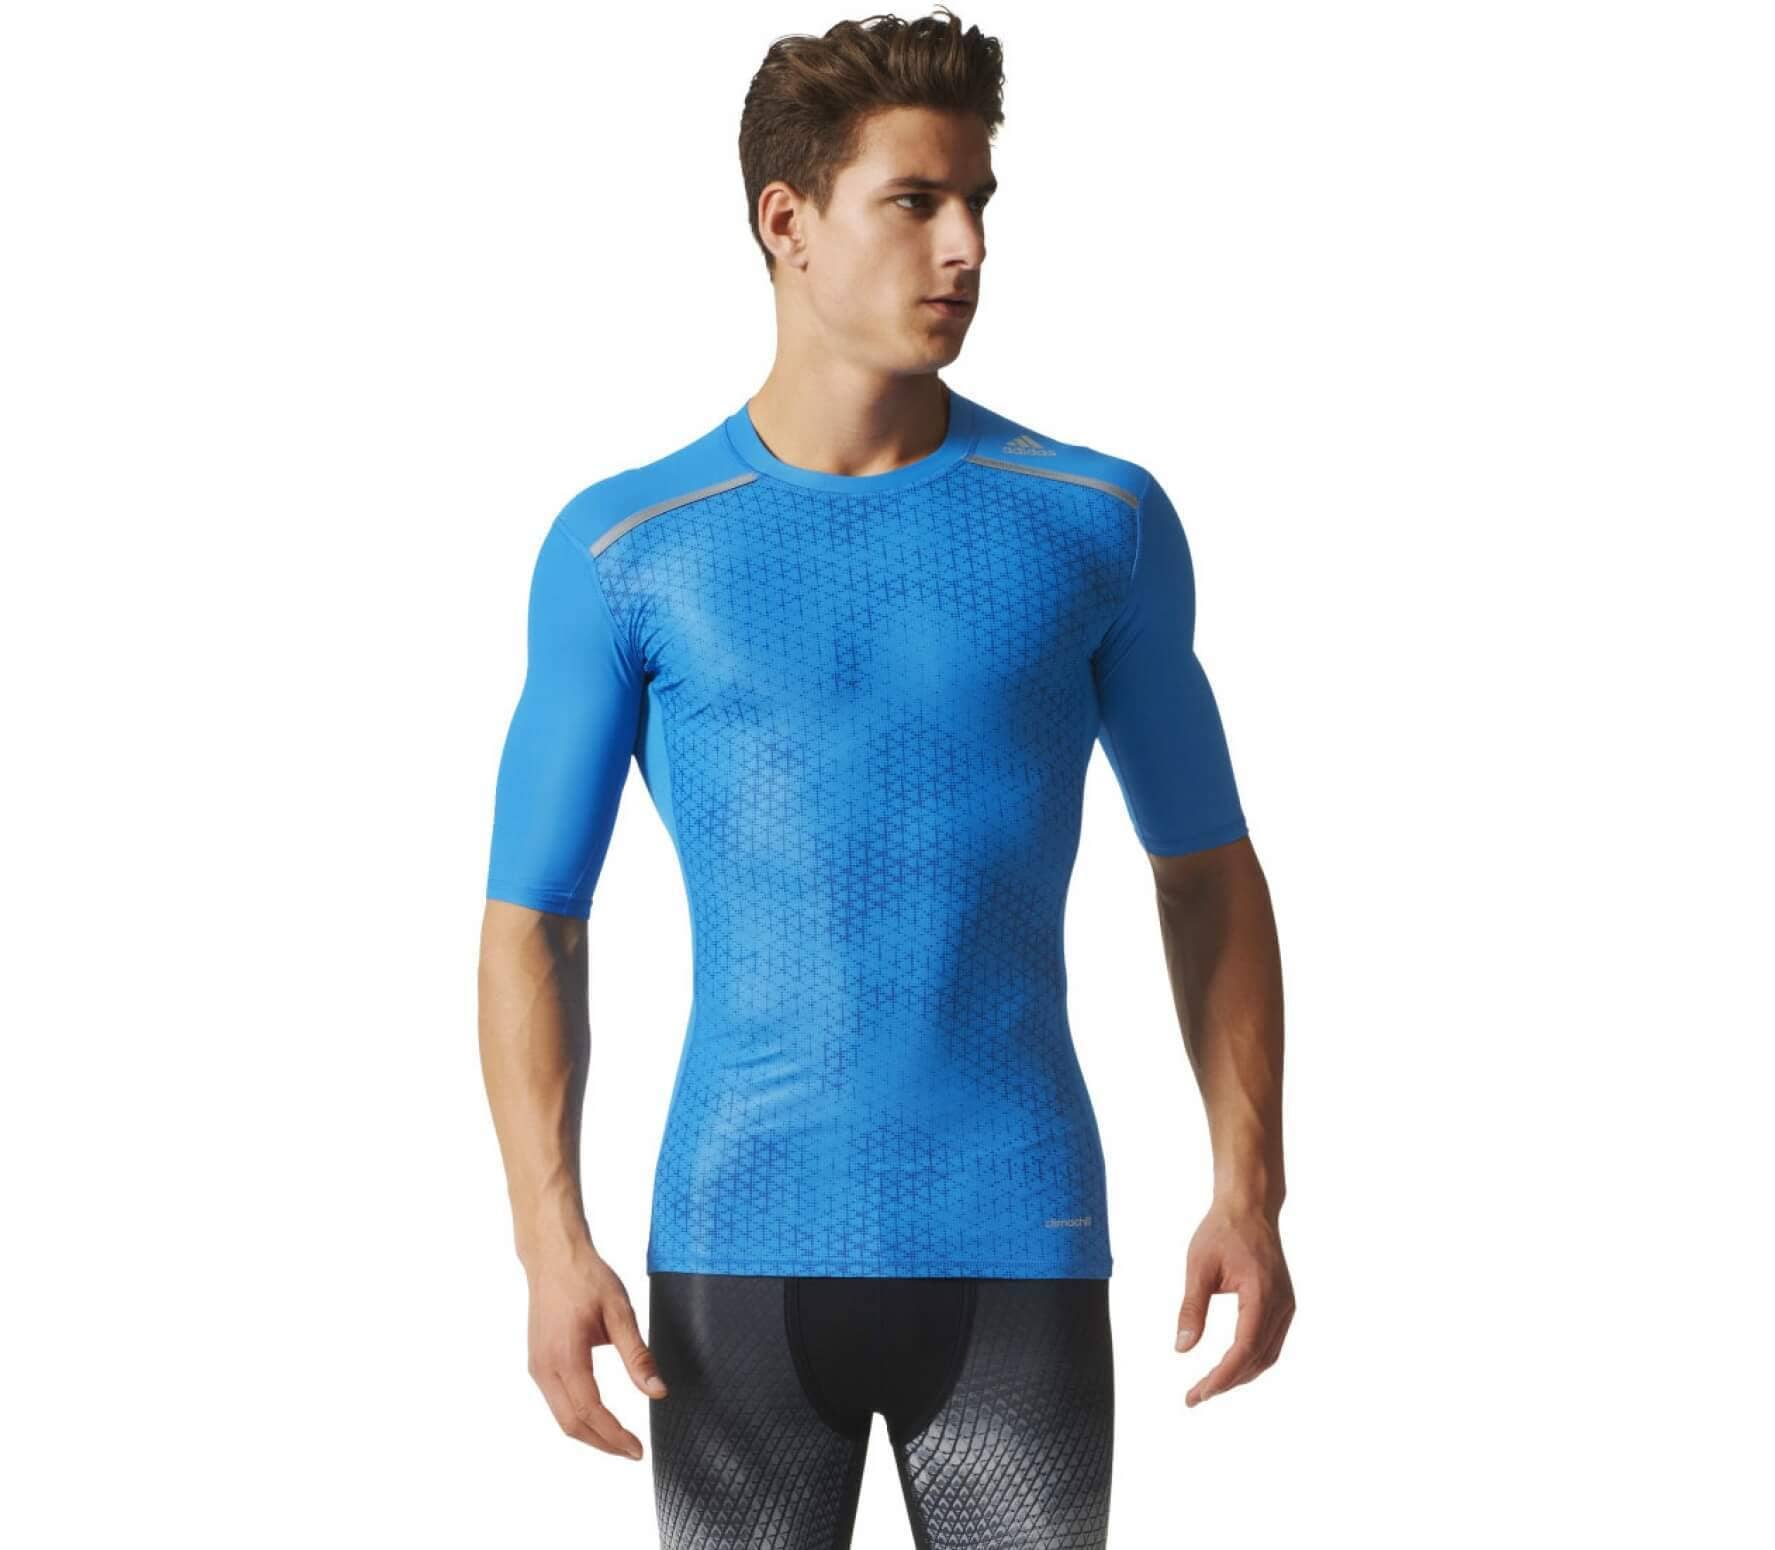 8598588445f78 Adidas - Techfit Chill Graphic Tee men s training top (blue) - buy ...